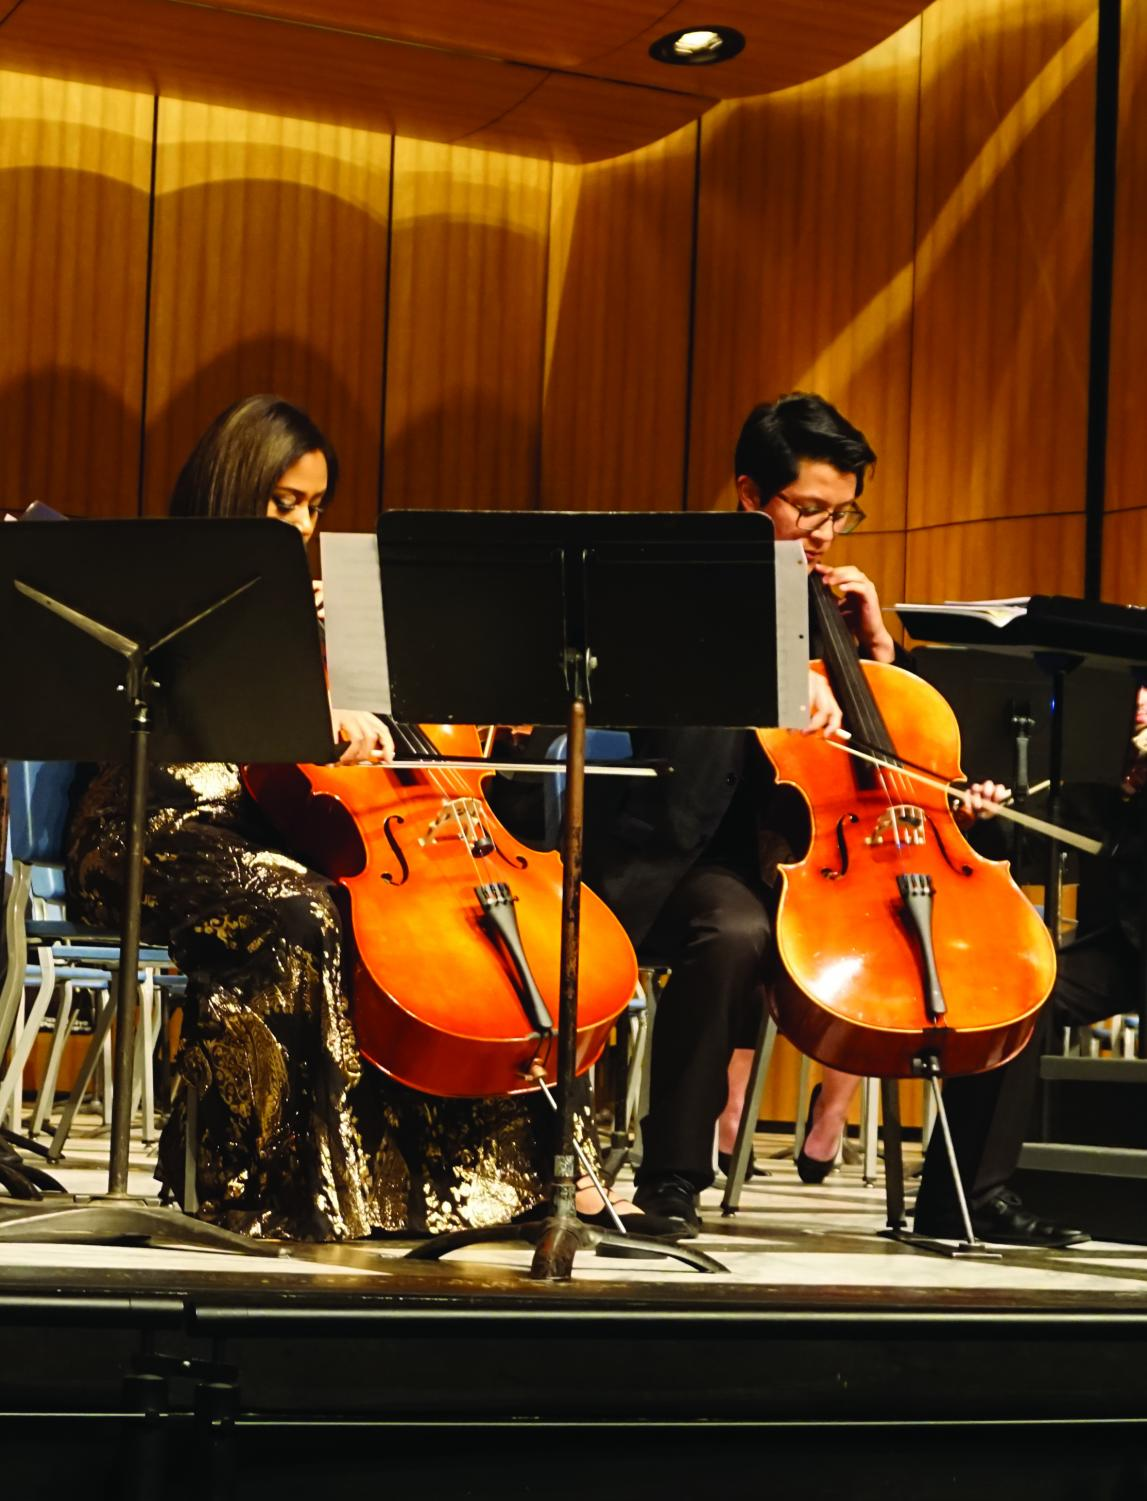 Cheyenne Toussaint and Sebastian Lee performing a cello duet.